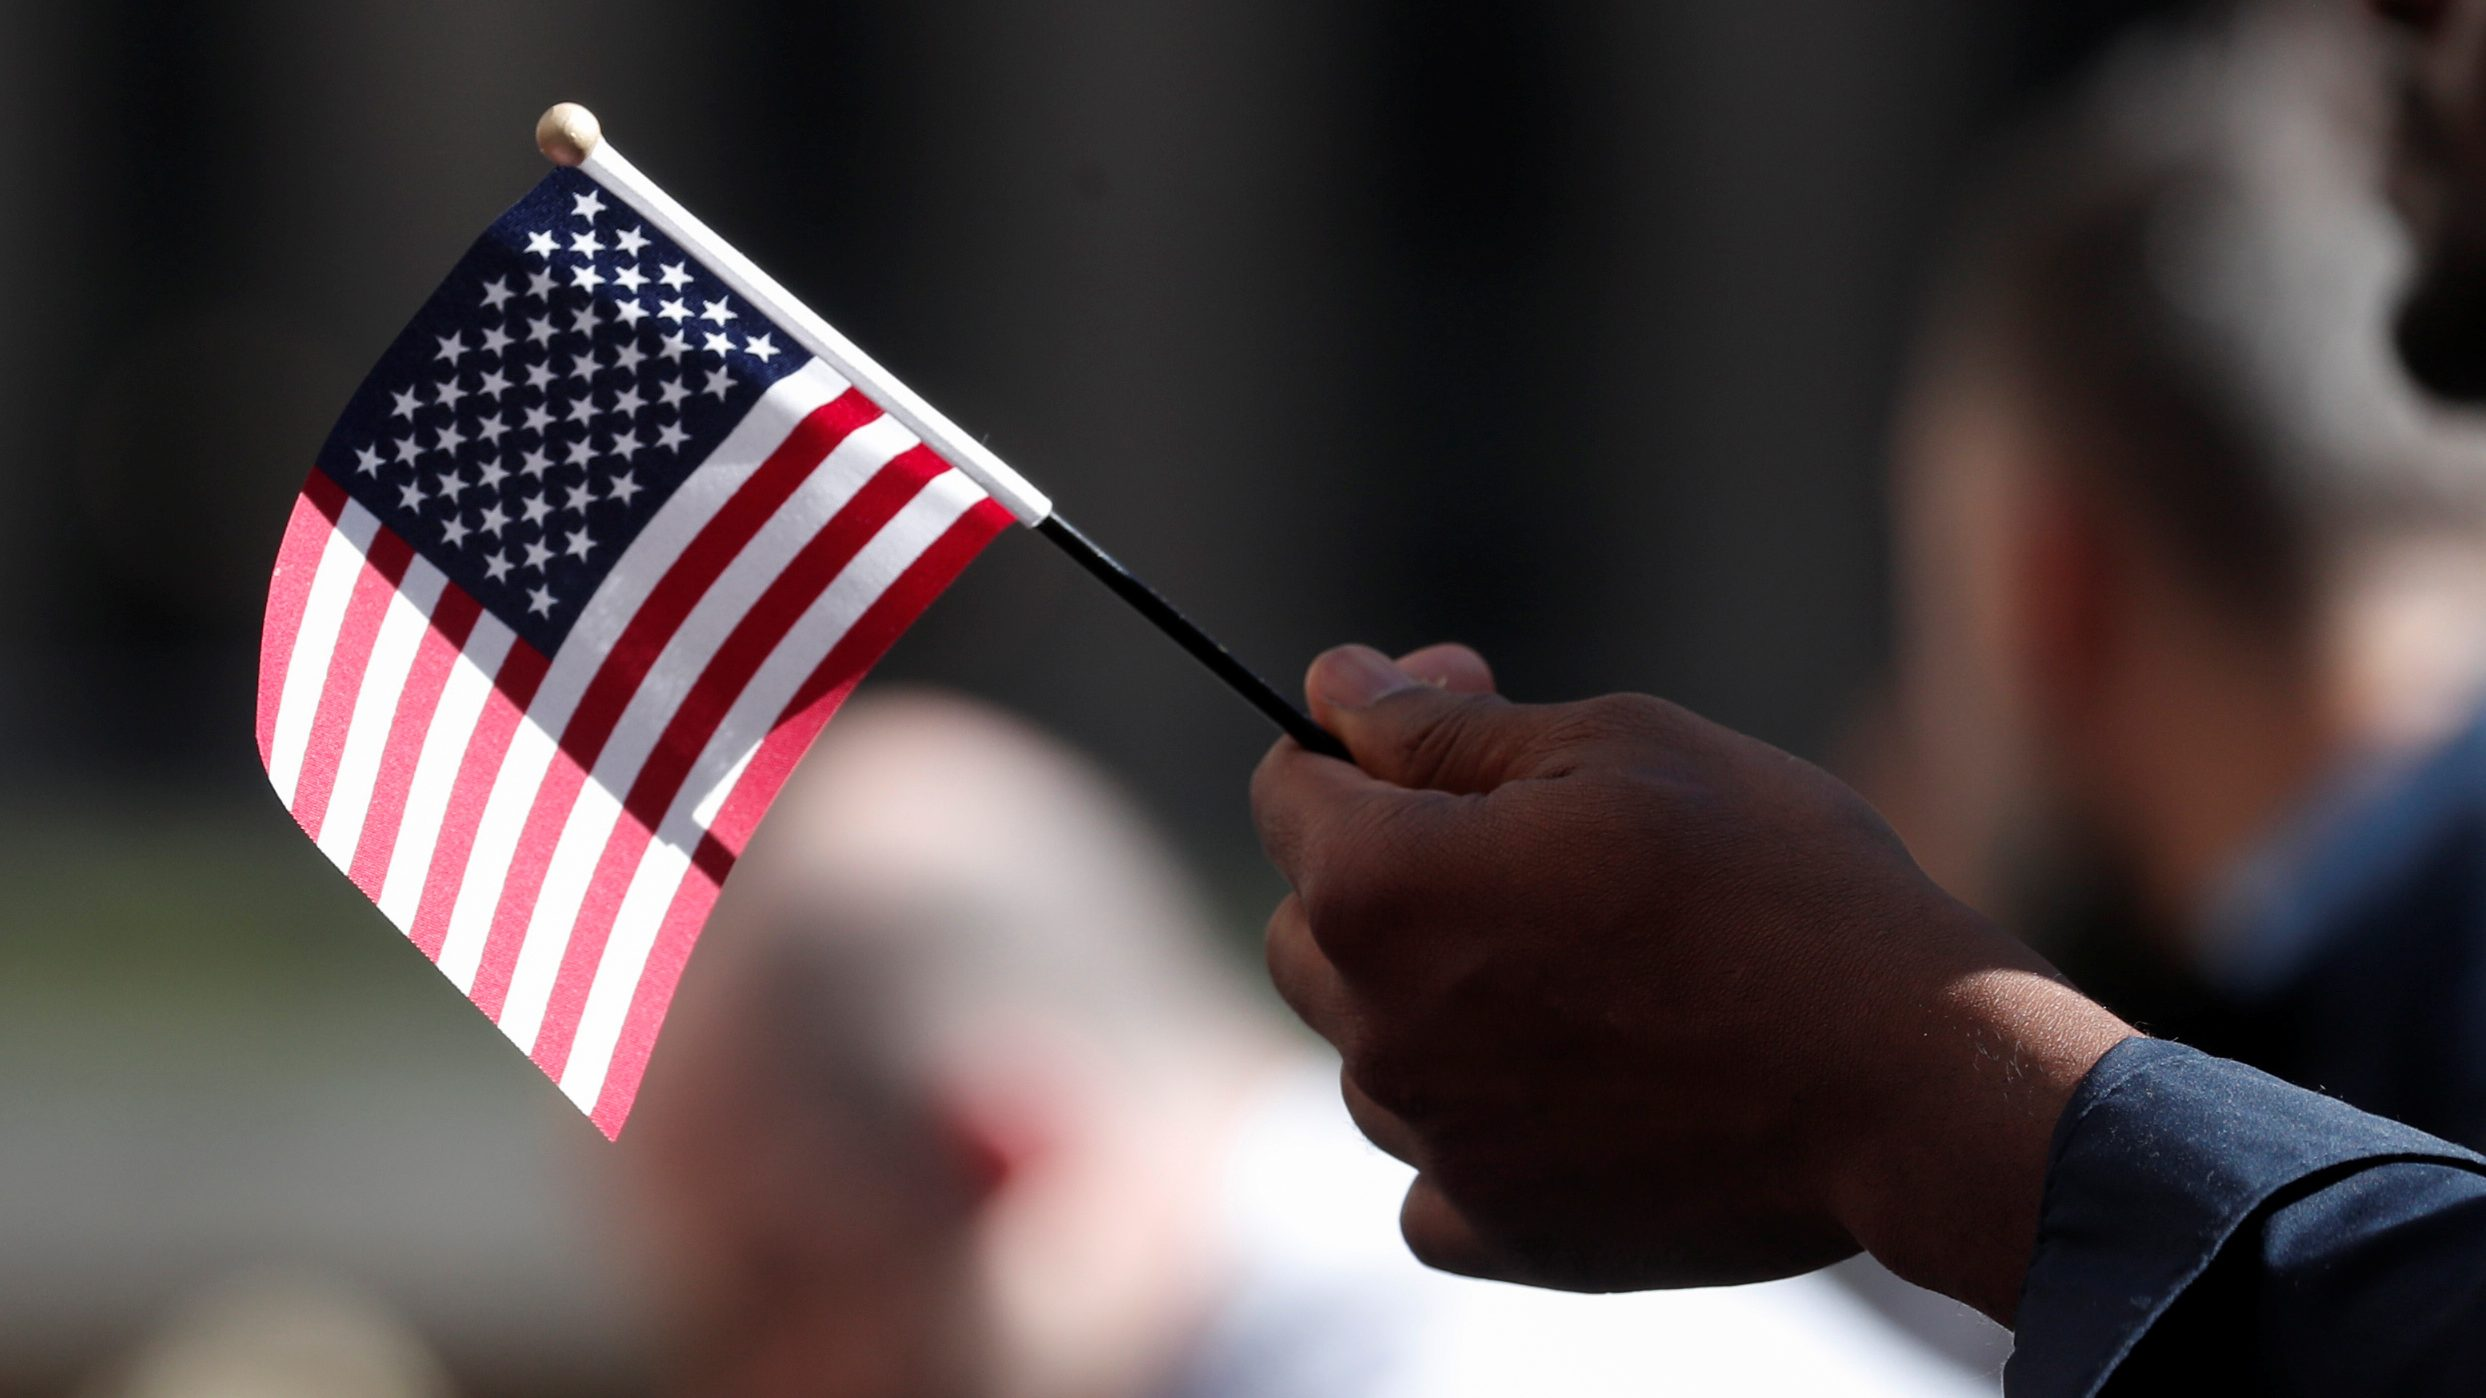 A citizenship candidate holds a flag during the U.S. Citizenship and Immigration Services (USCIS) naturalization ceremony at Rockefeller Plaza in New York City